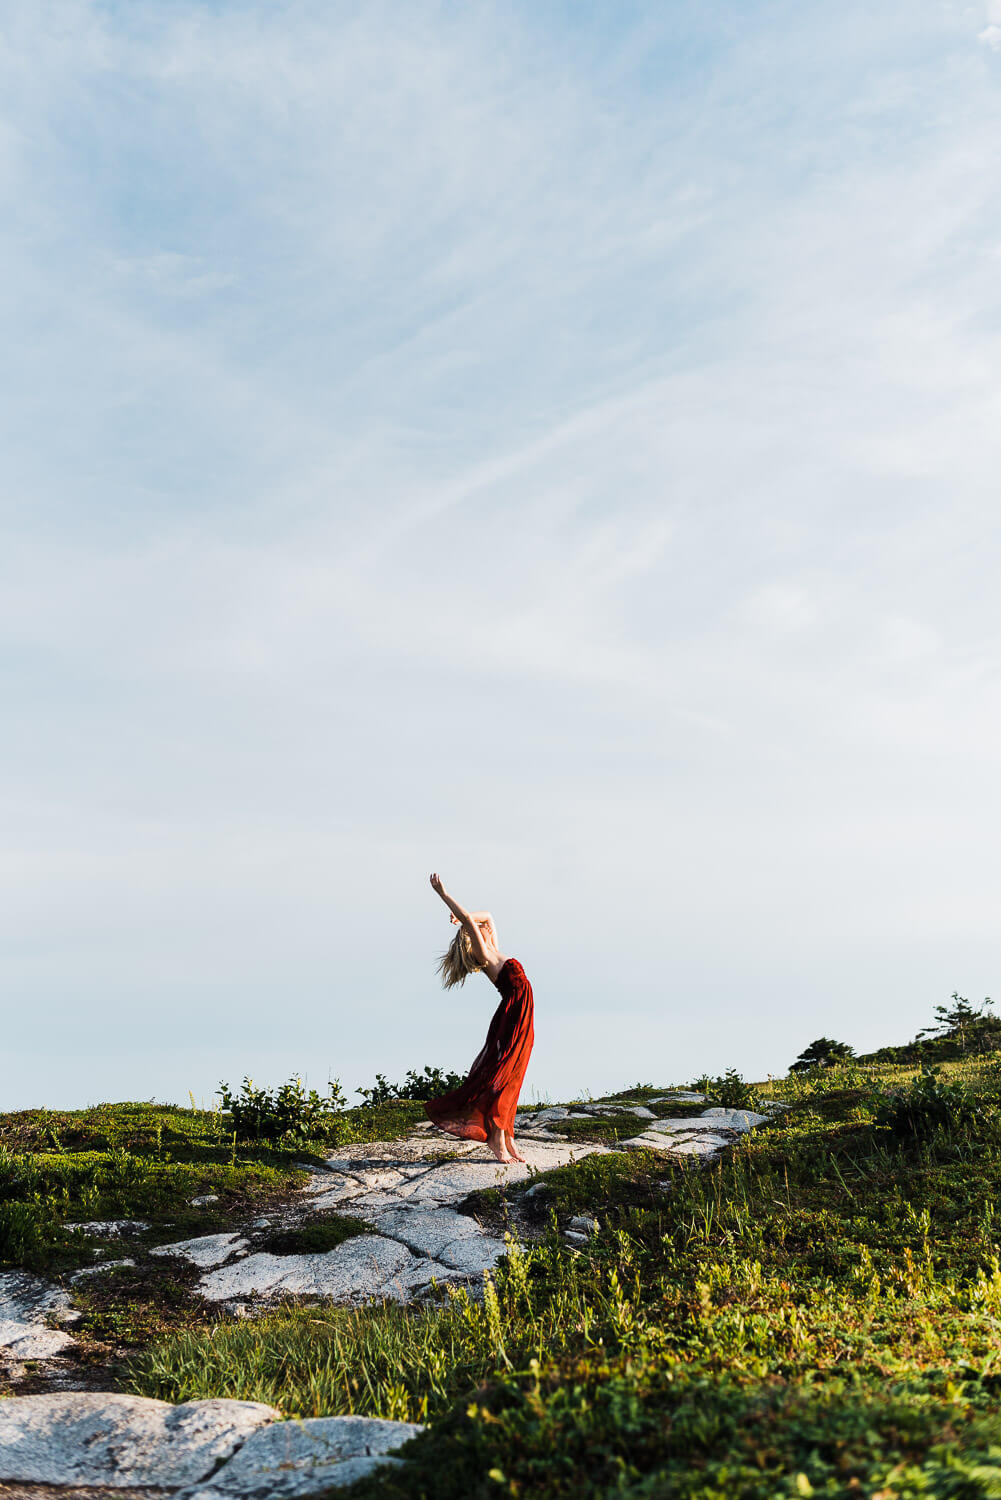 Blonde haired model wearing red dress posing on rugged landscape of Duncan's Cove near Halifax